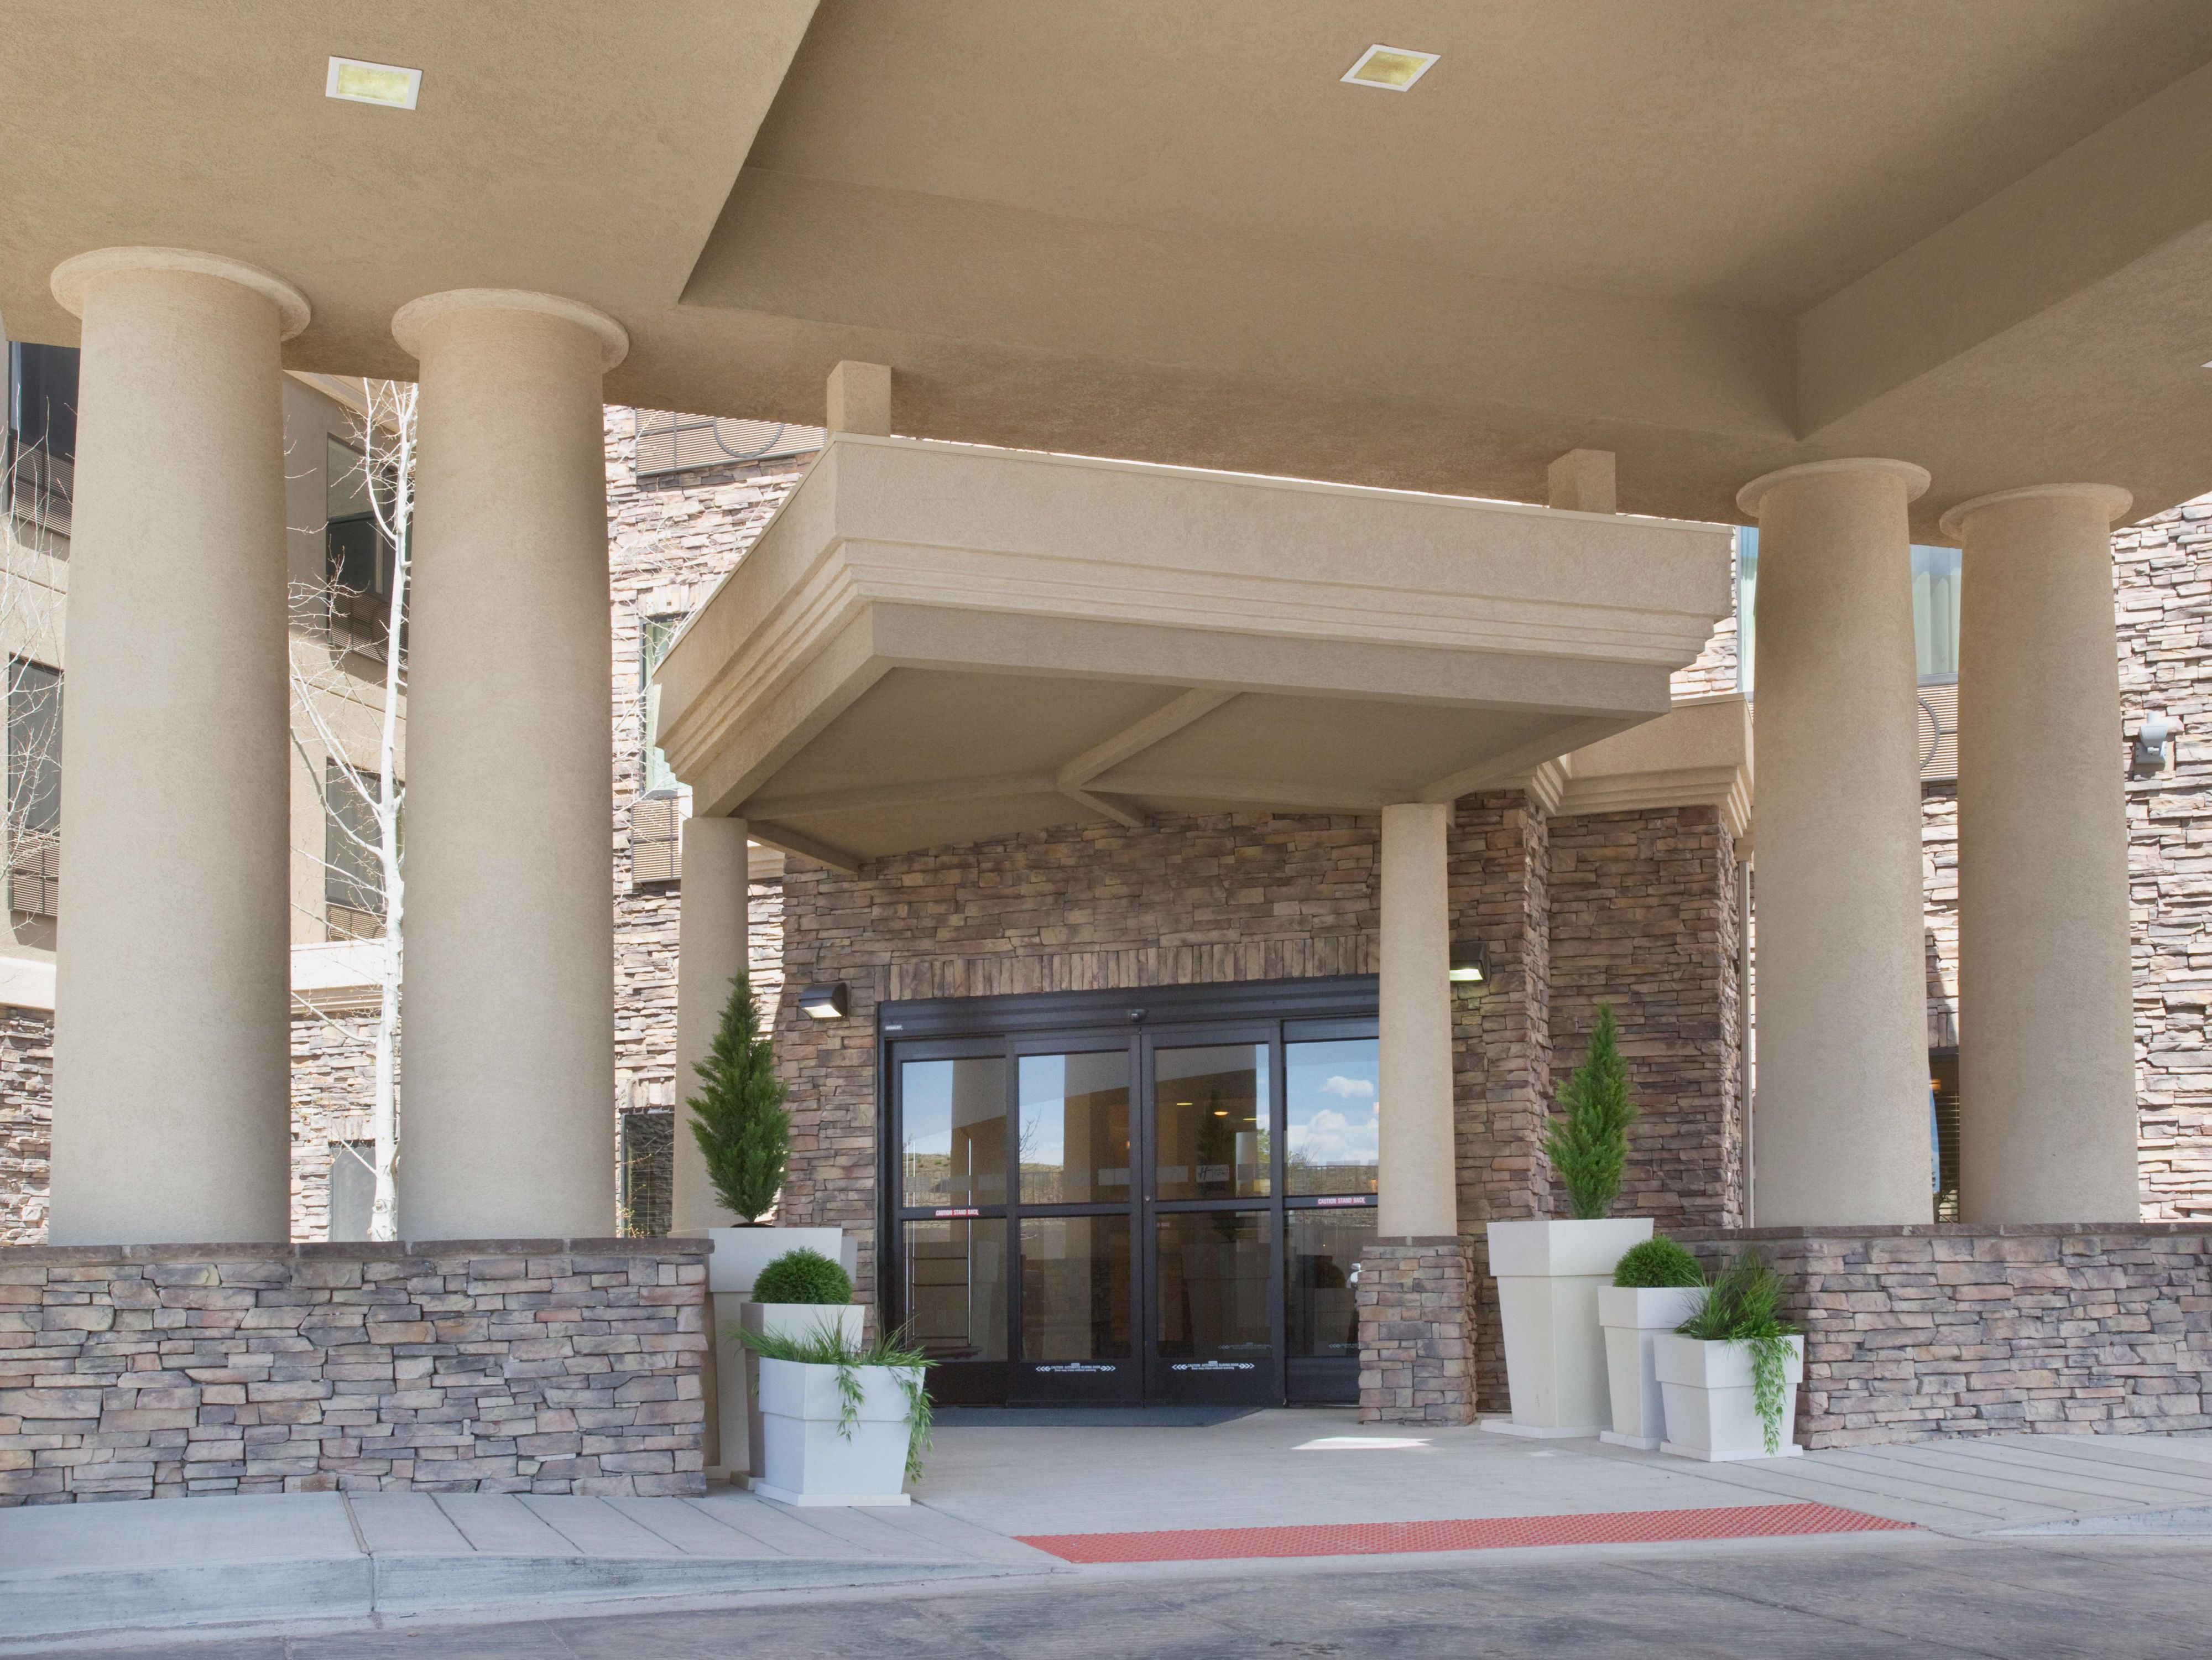 New Hotel Entrance